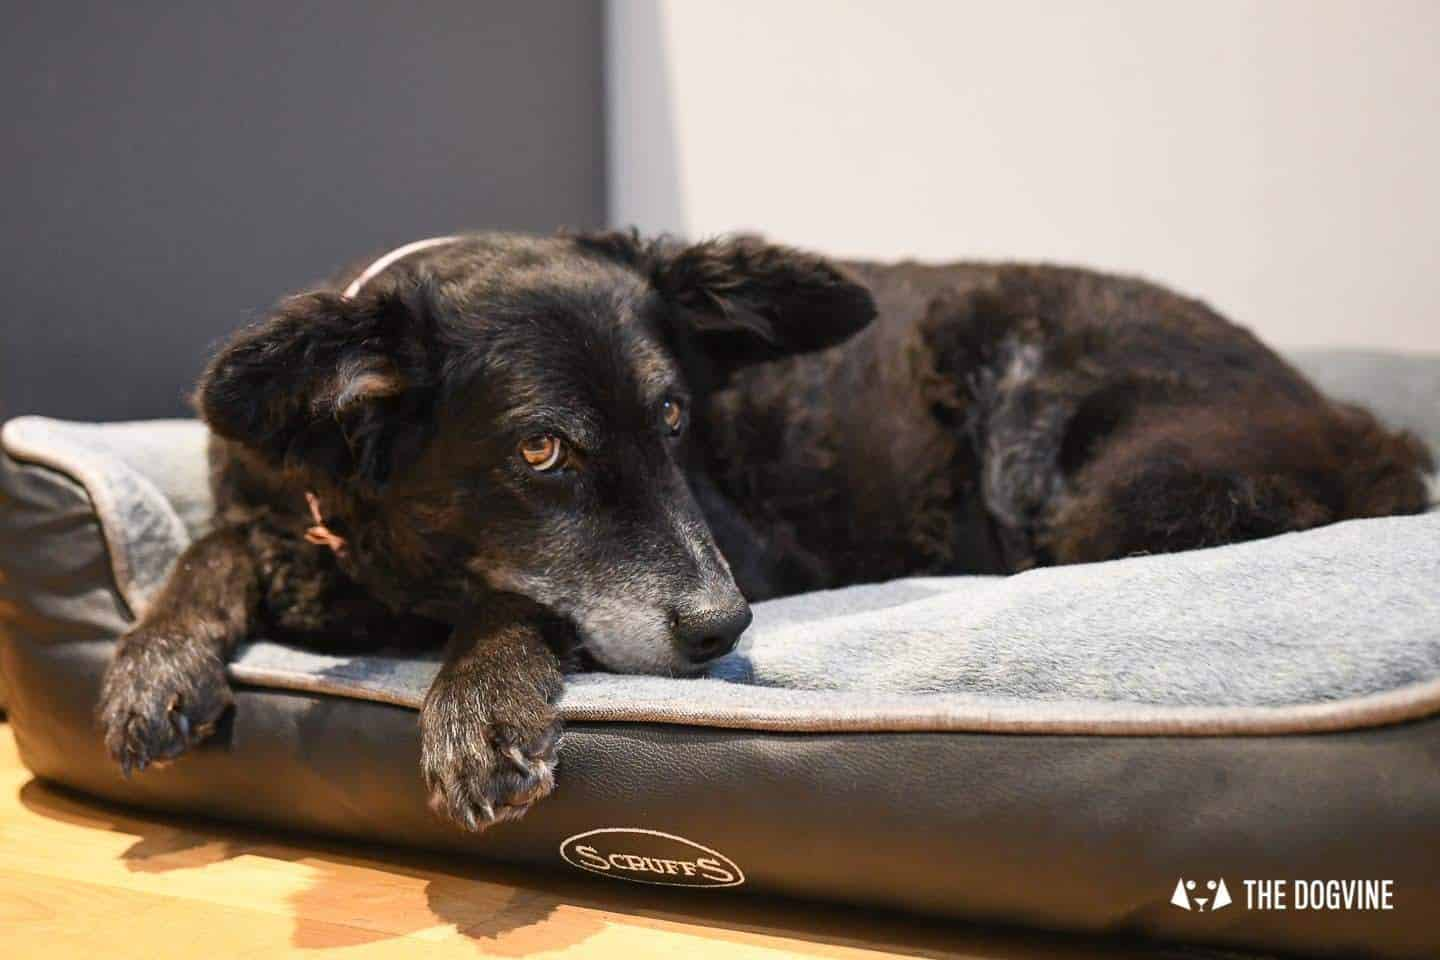 Paws Up For The Scruffs Orthopaedic Dog Bed - Chateau Box Bed Review 2